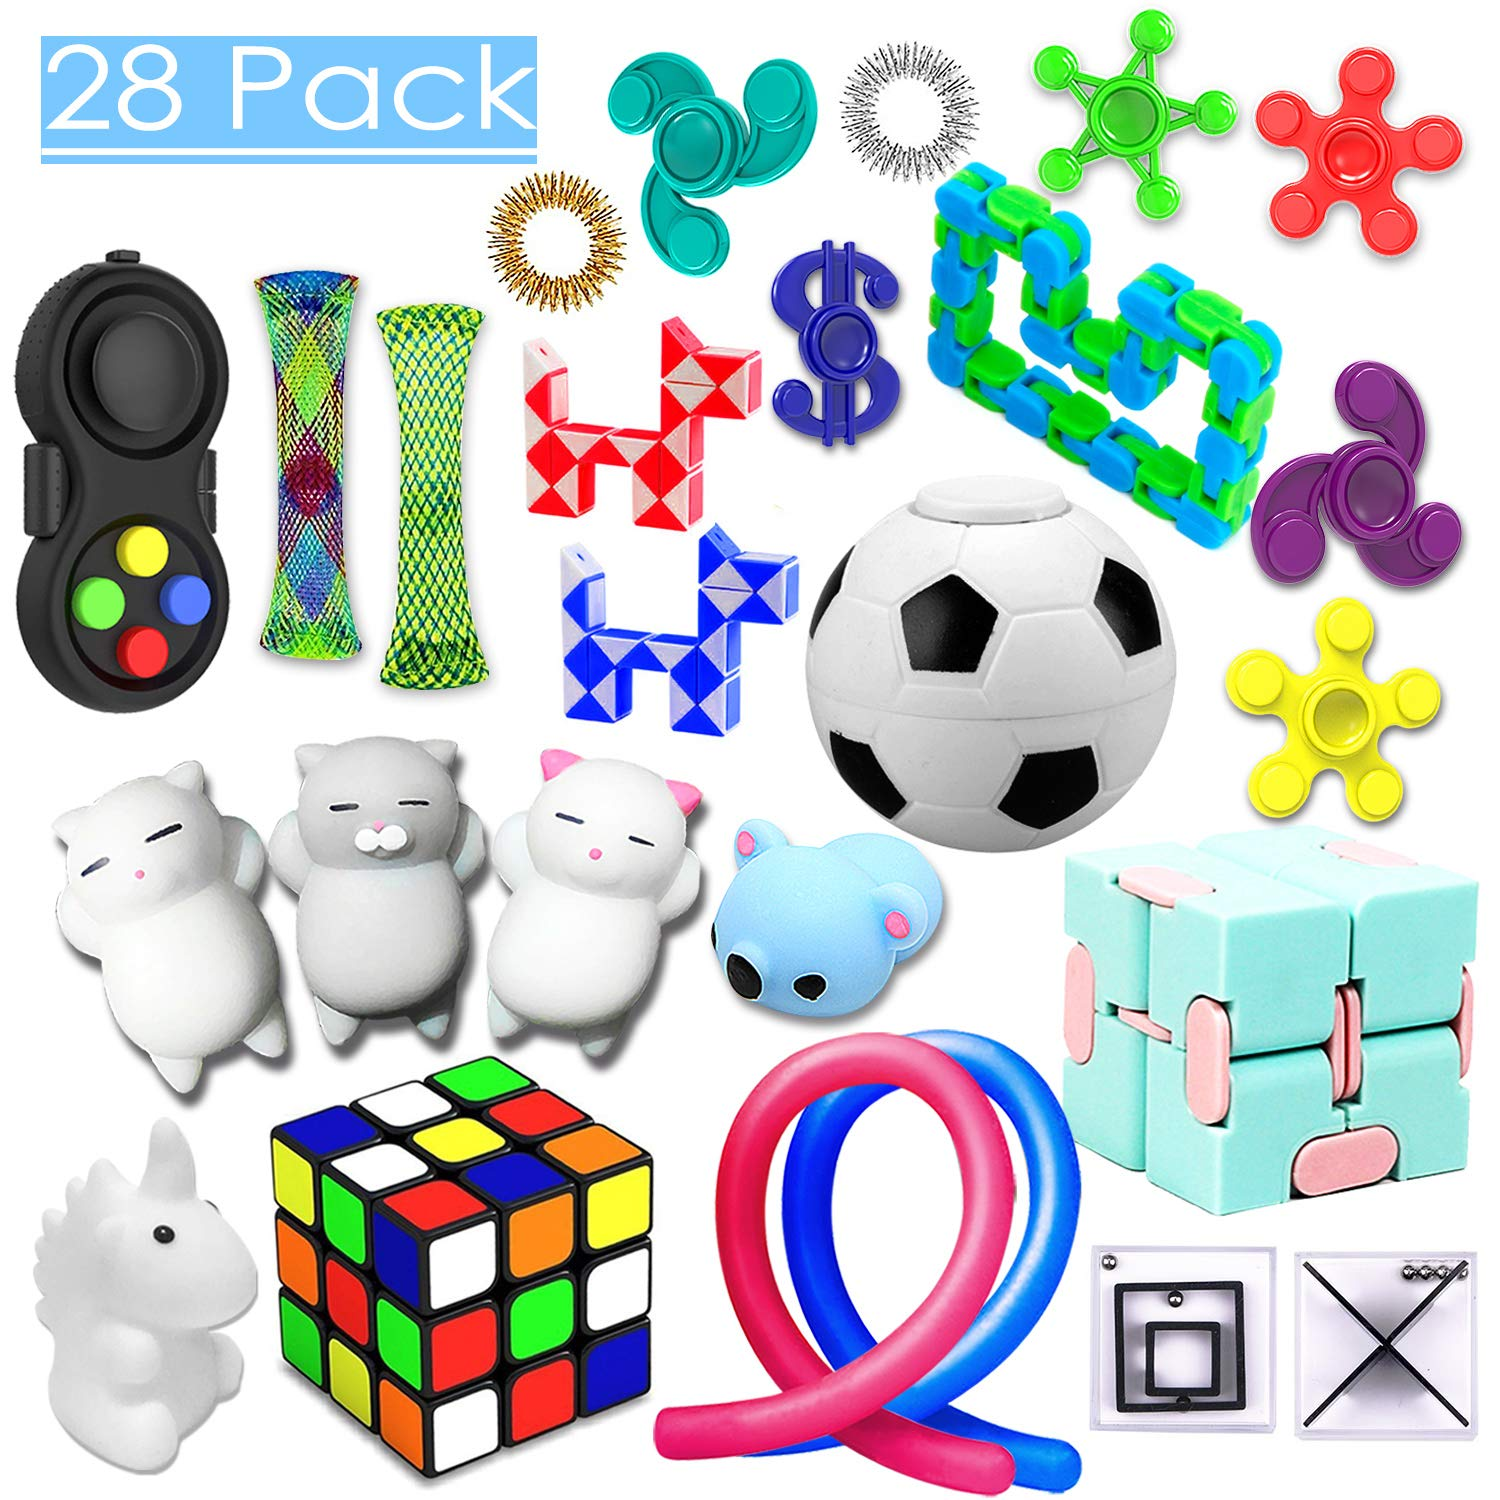 28 Pack Sensory Toys Set, Relieves Stress and Anxiety Fidget Toy for Children Adults, Special Toys Assortment for Birthday Party Favors, Classroom Rewards Prizes, Carnival, Piñata Goodie Bag Fillers by PP PHIMOTA